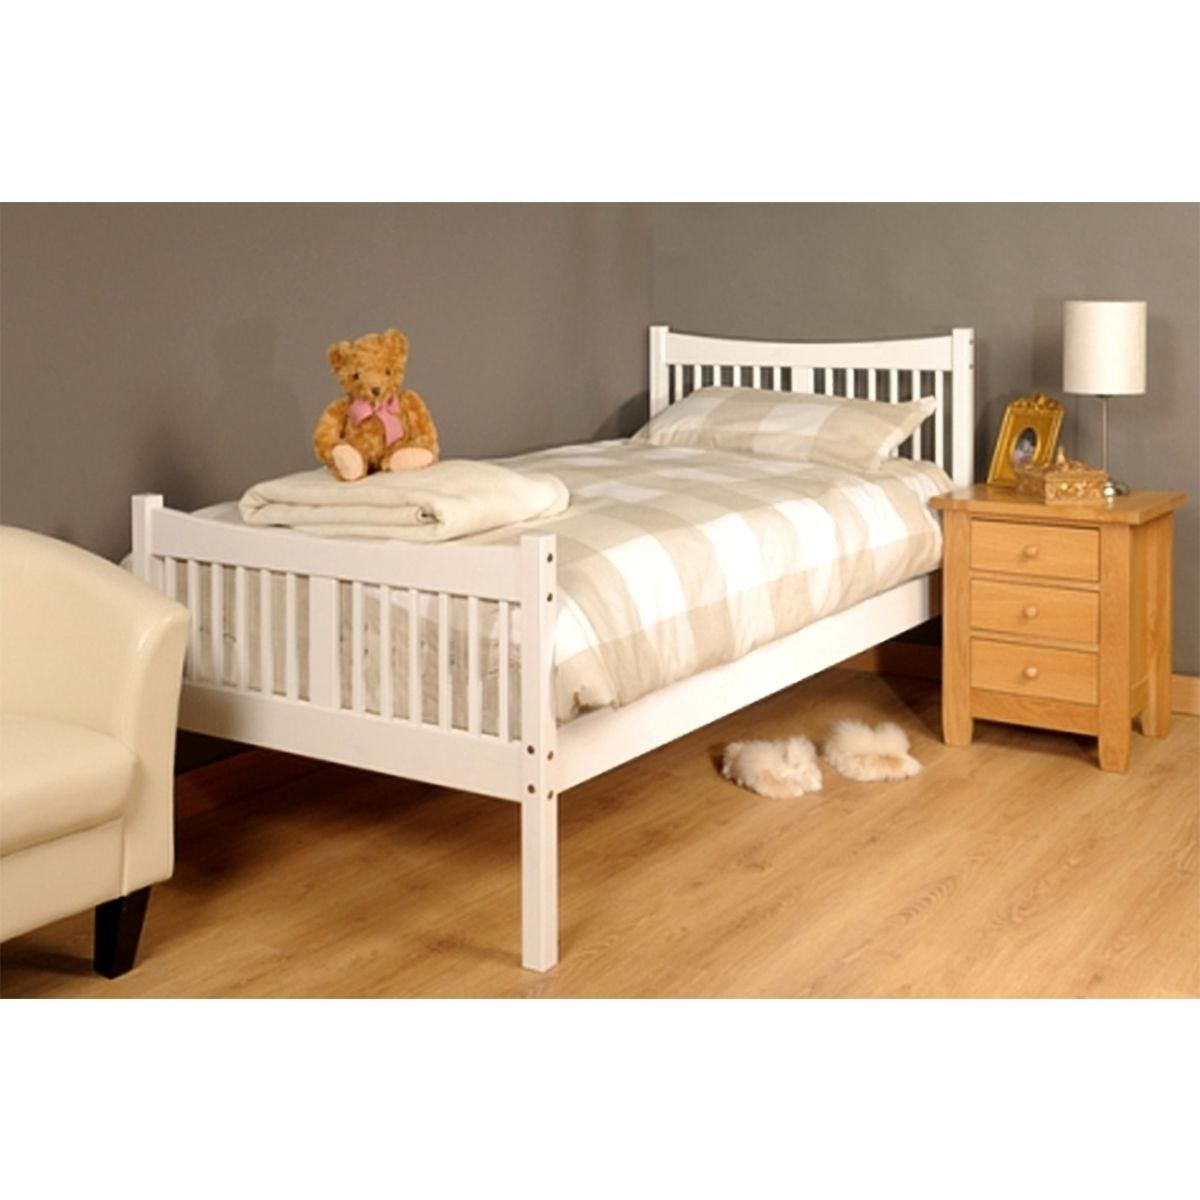 Valmiera Bed Frame - White